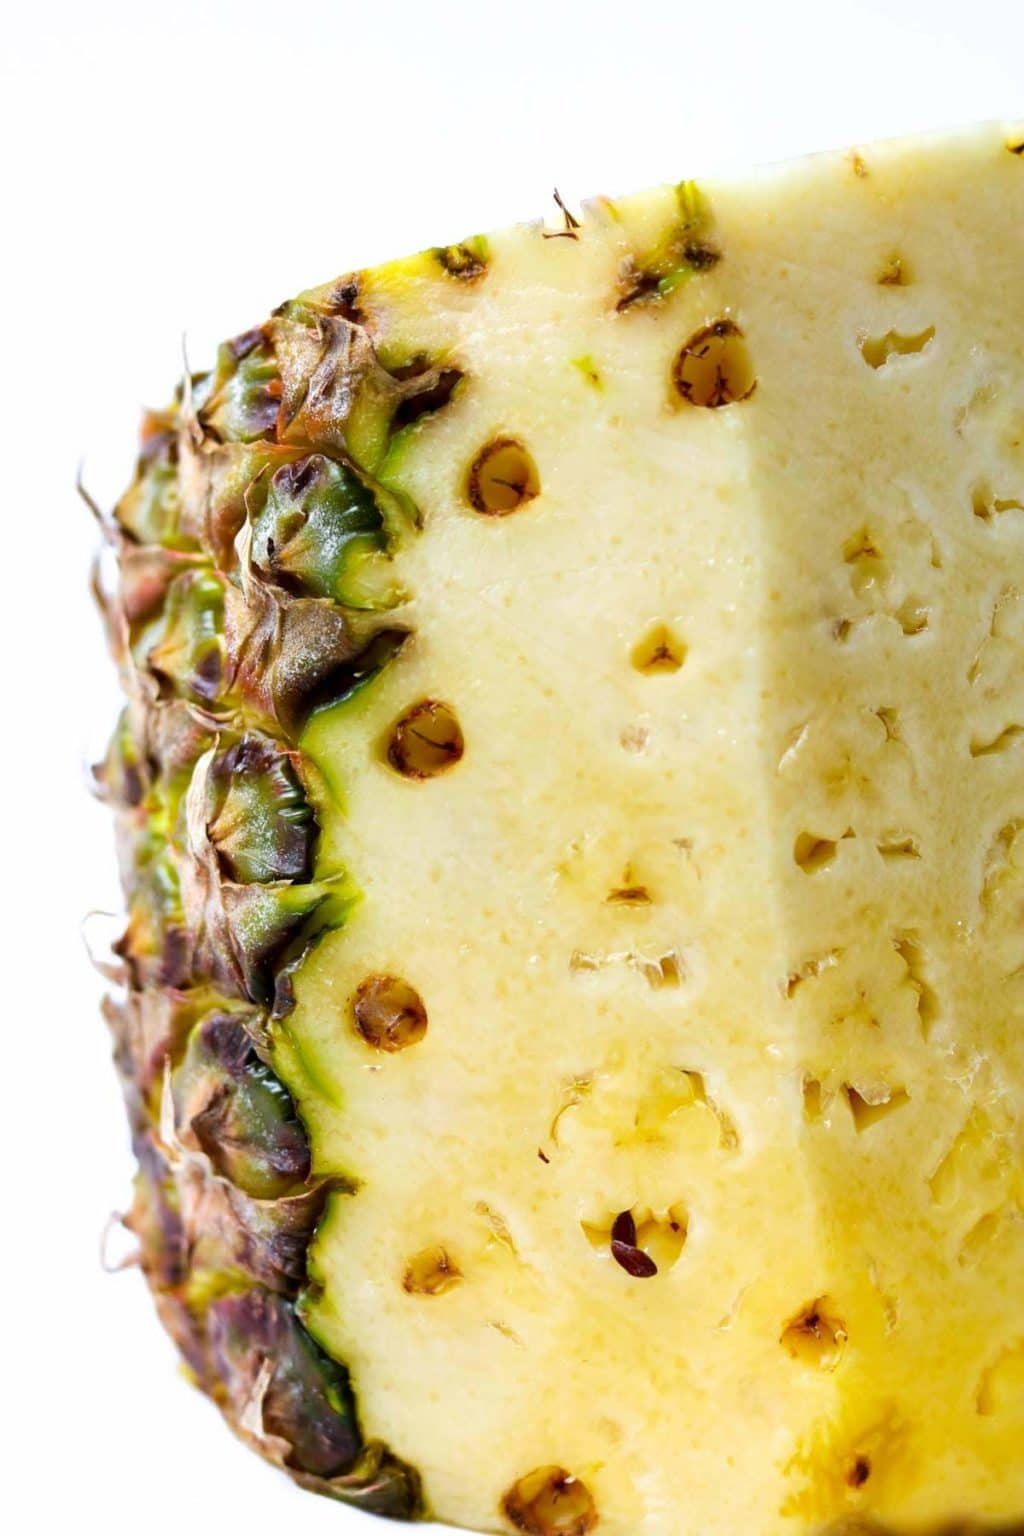 Showing the pine spots in a pineapple that should be removed